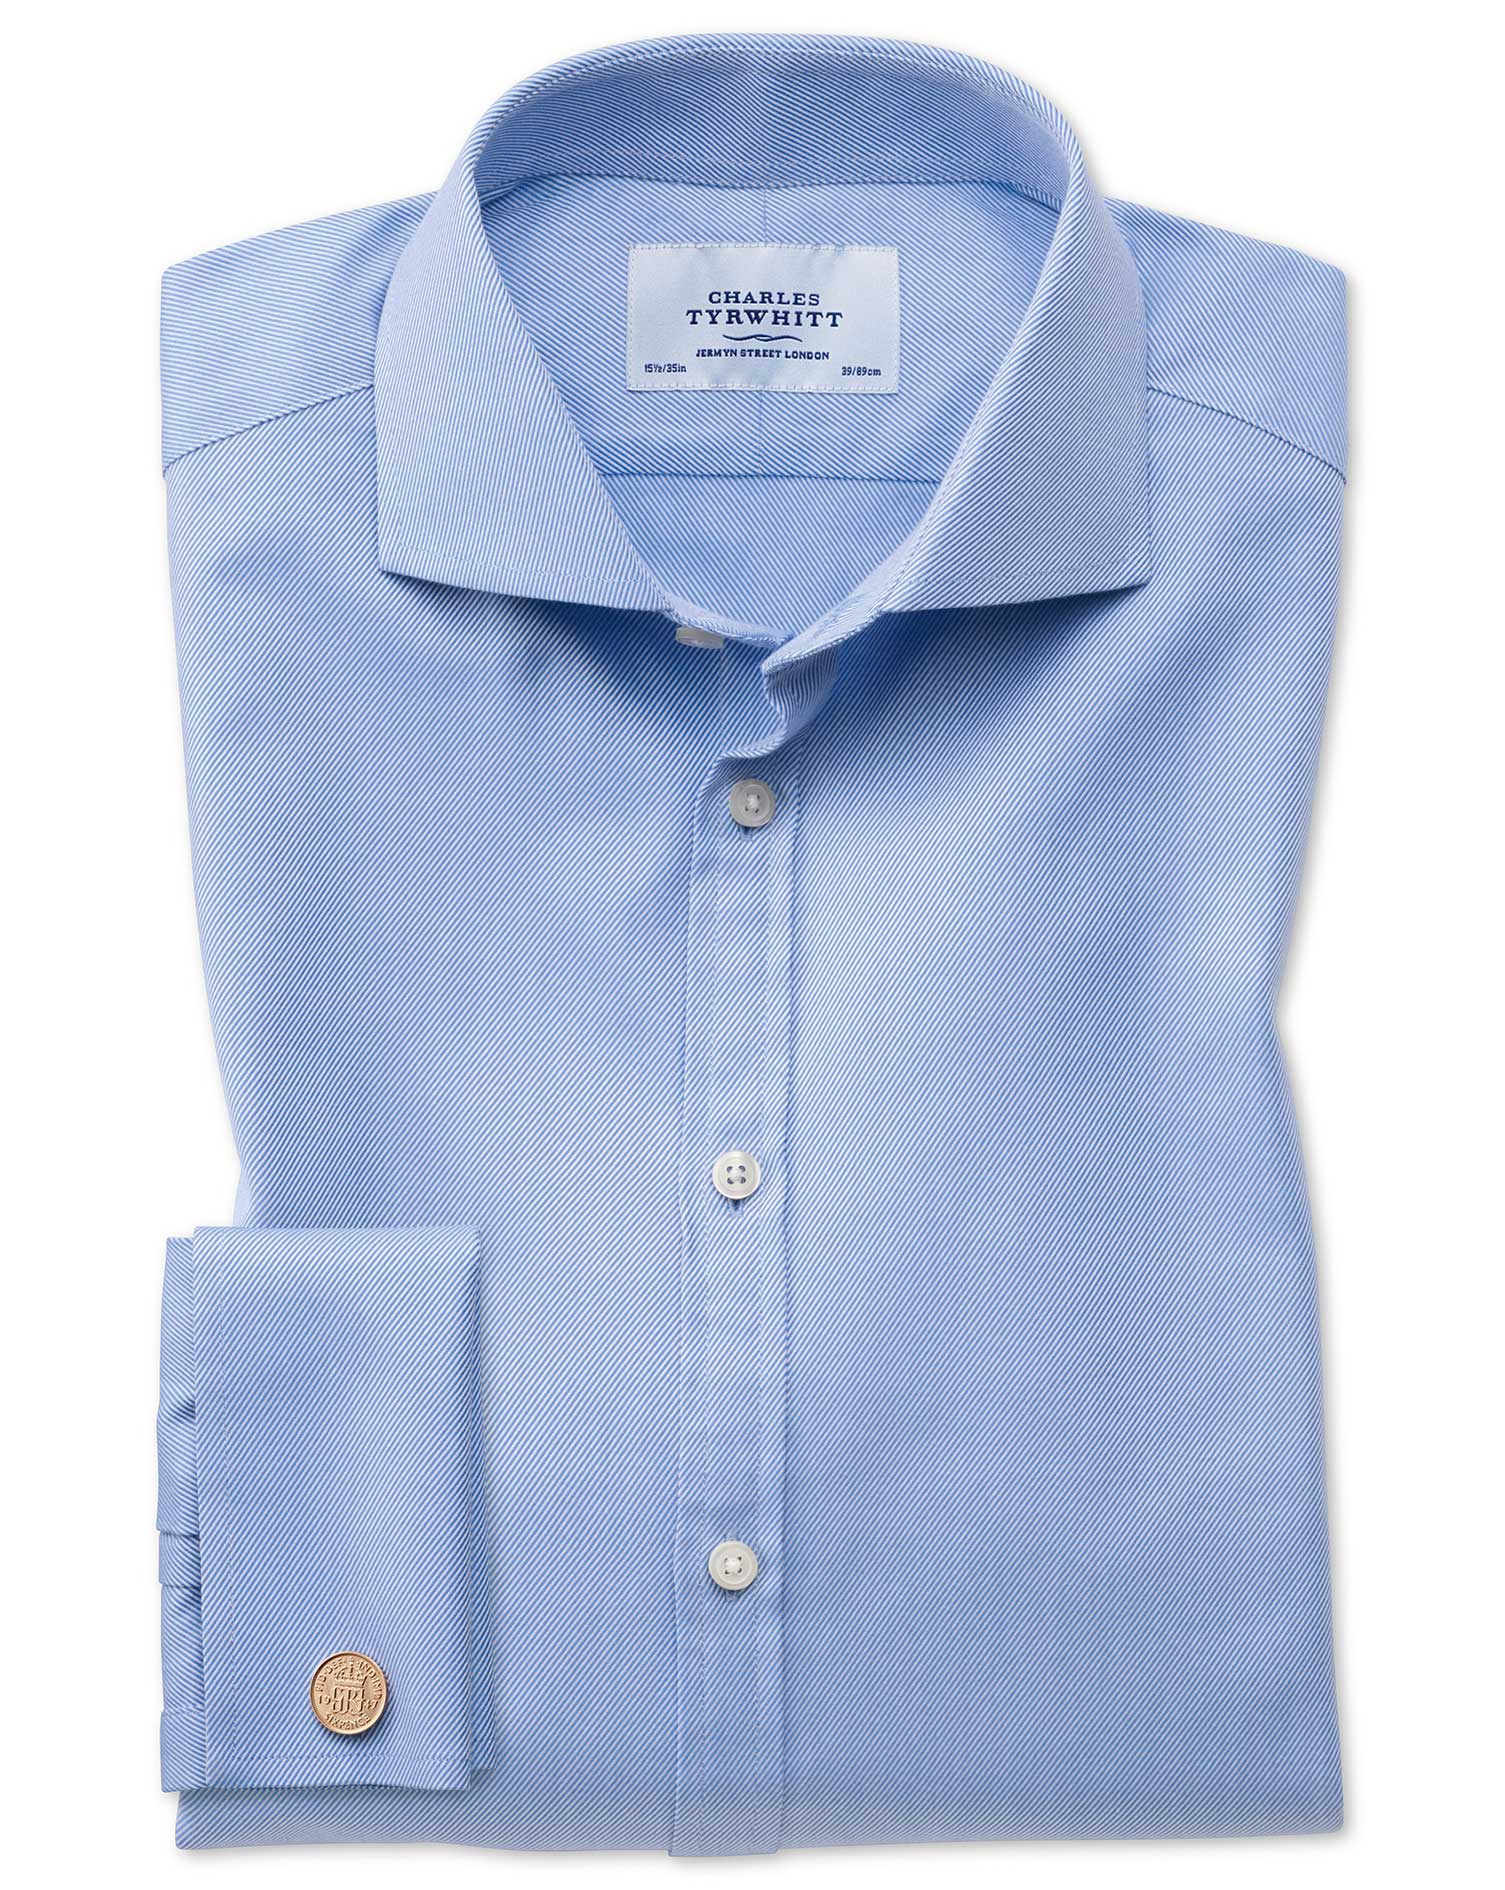 Extra Slim Fit Cutaway Egyptian Cotton Cavalry Twill Blue Formal Shirt Single Cuff Size 16.5/35 by C